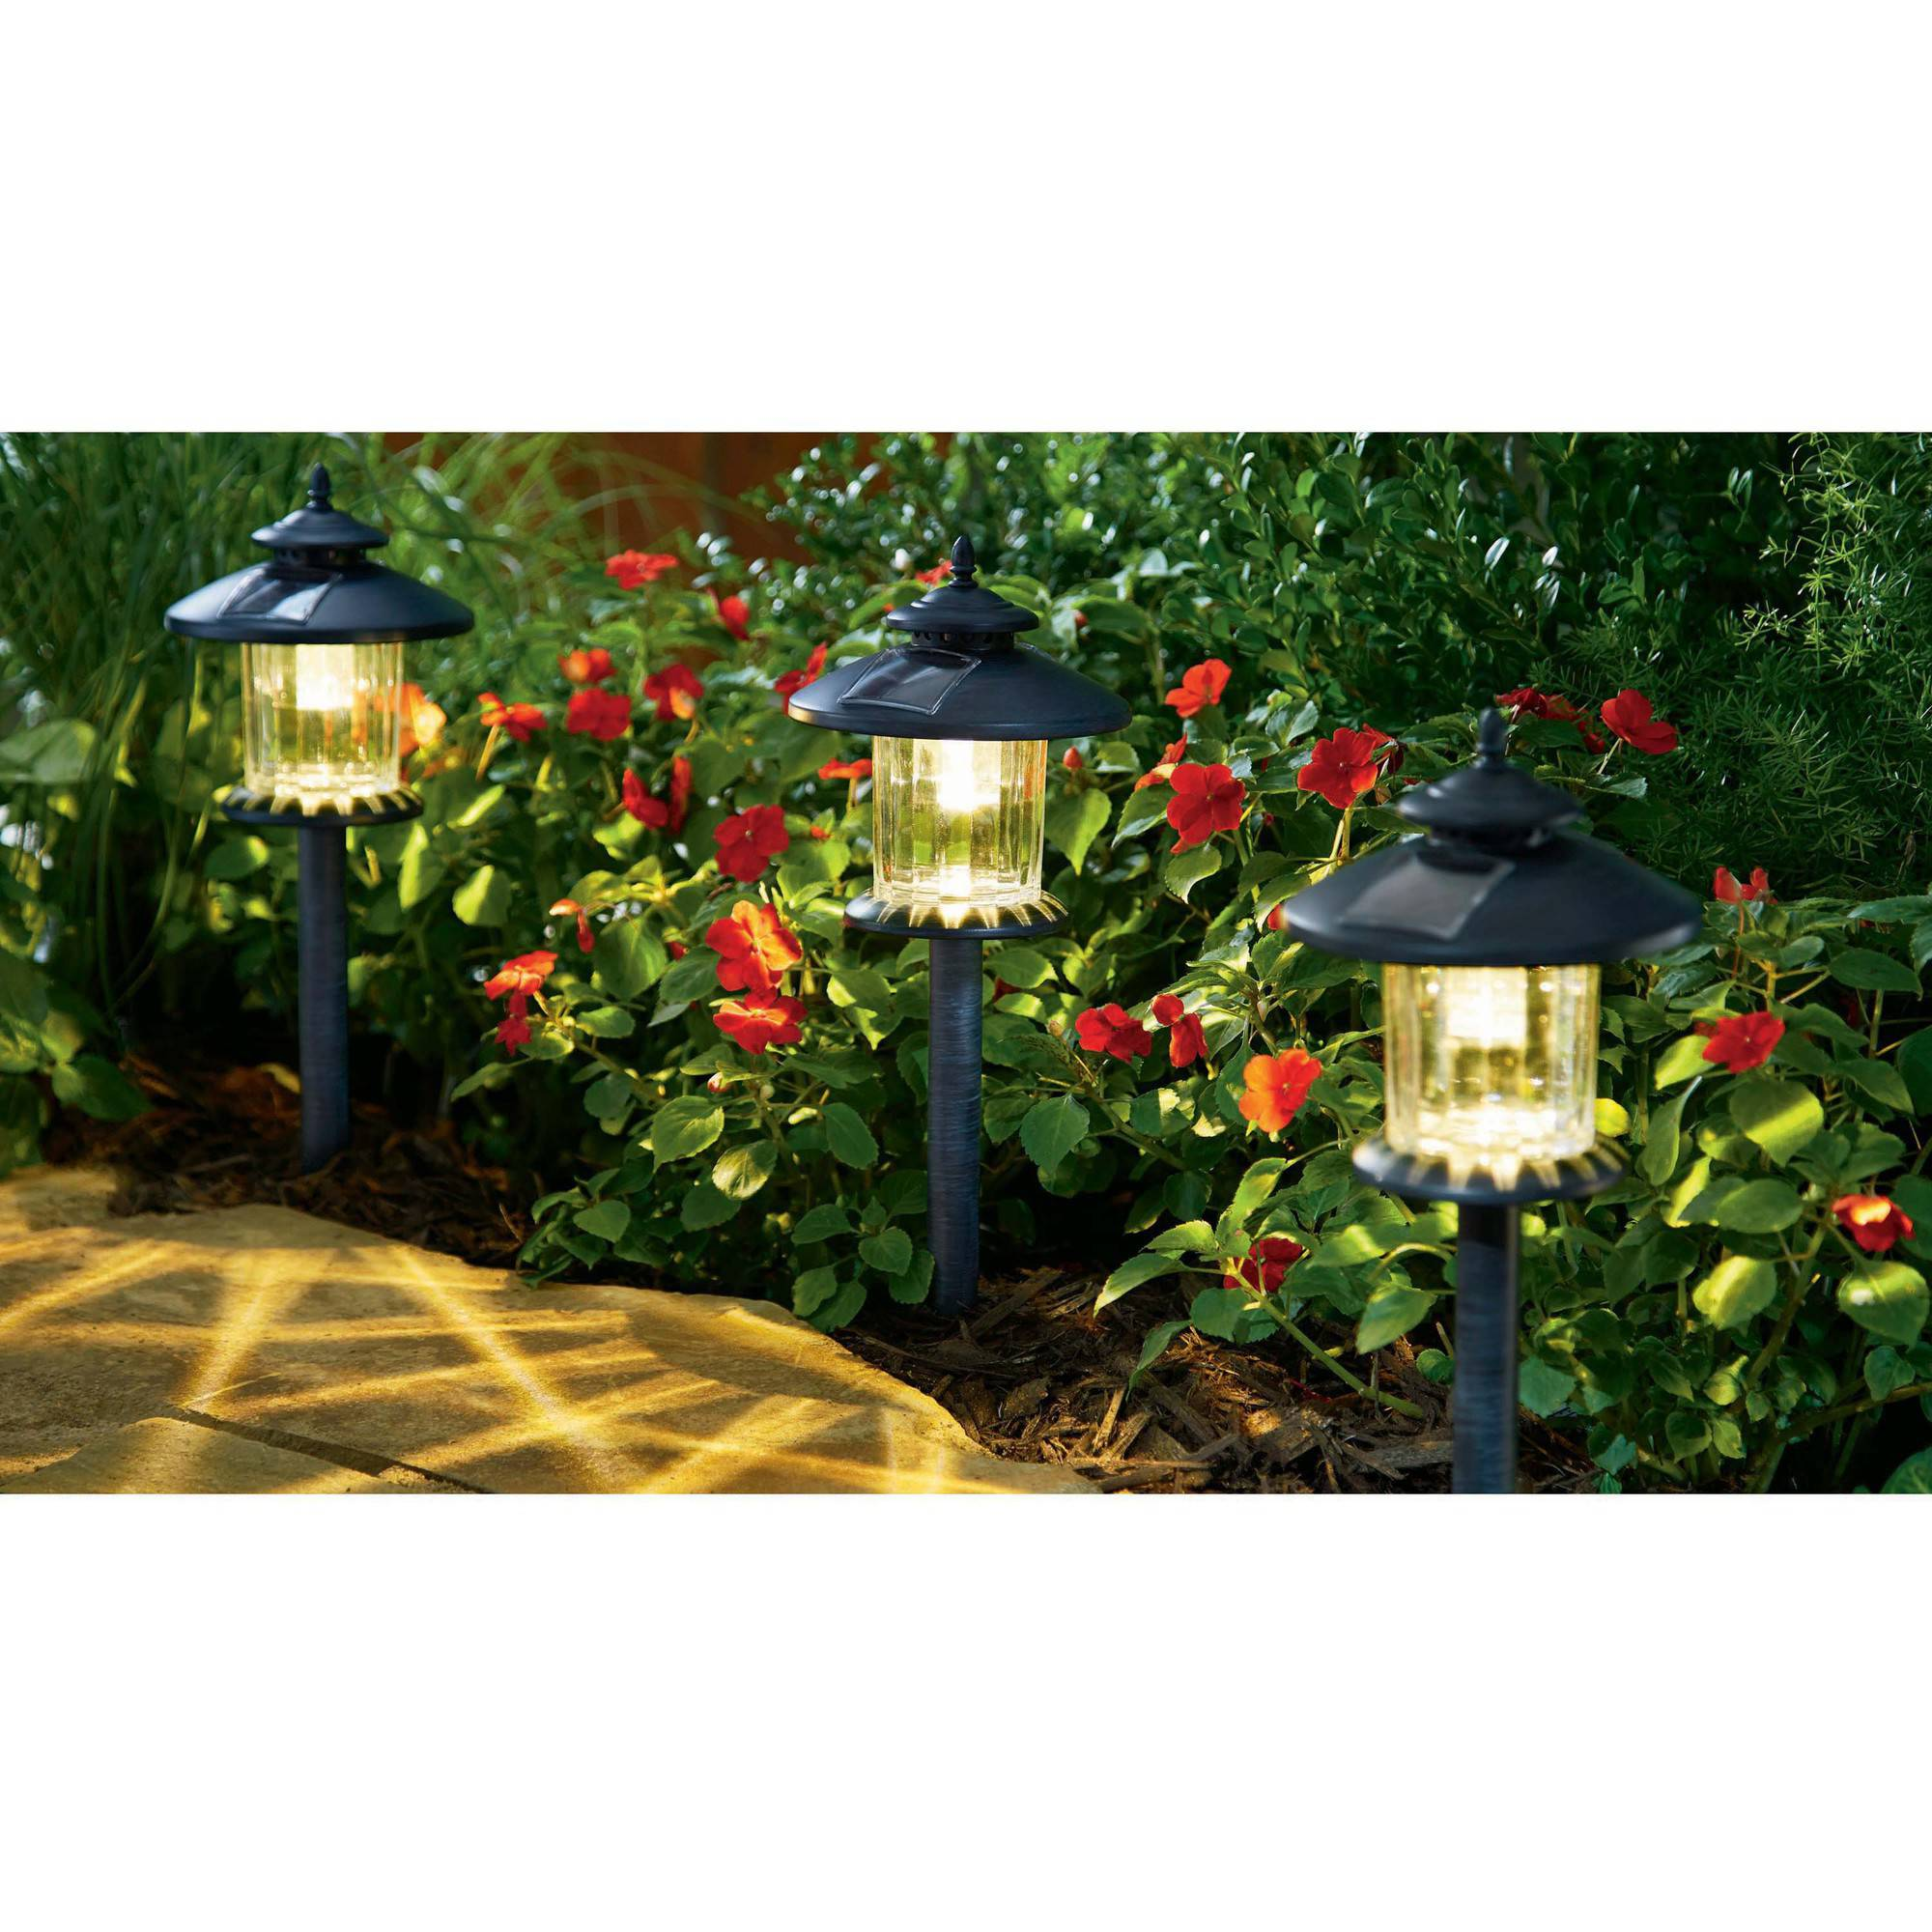 Better Homes and Gardens 3 Piece Covington Solar-Powered Landscape Light Set, Weathered Zinc by